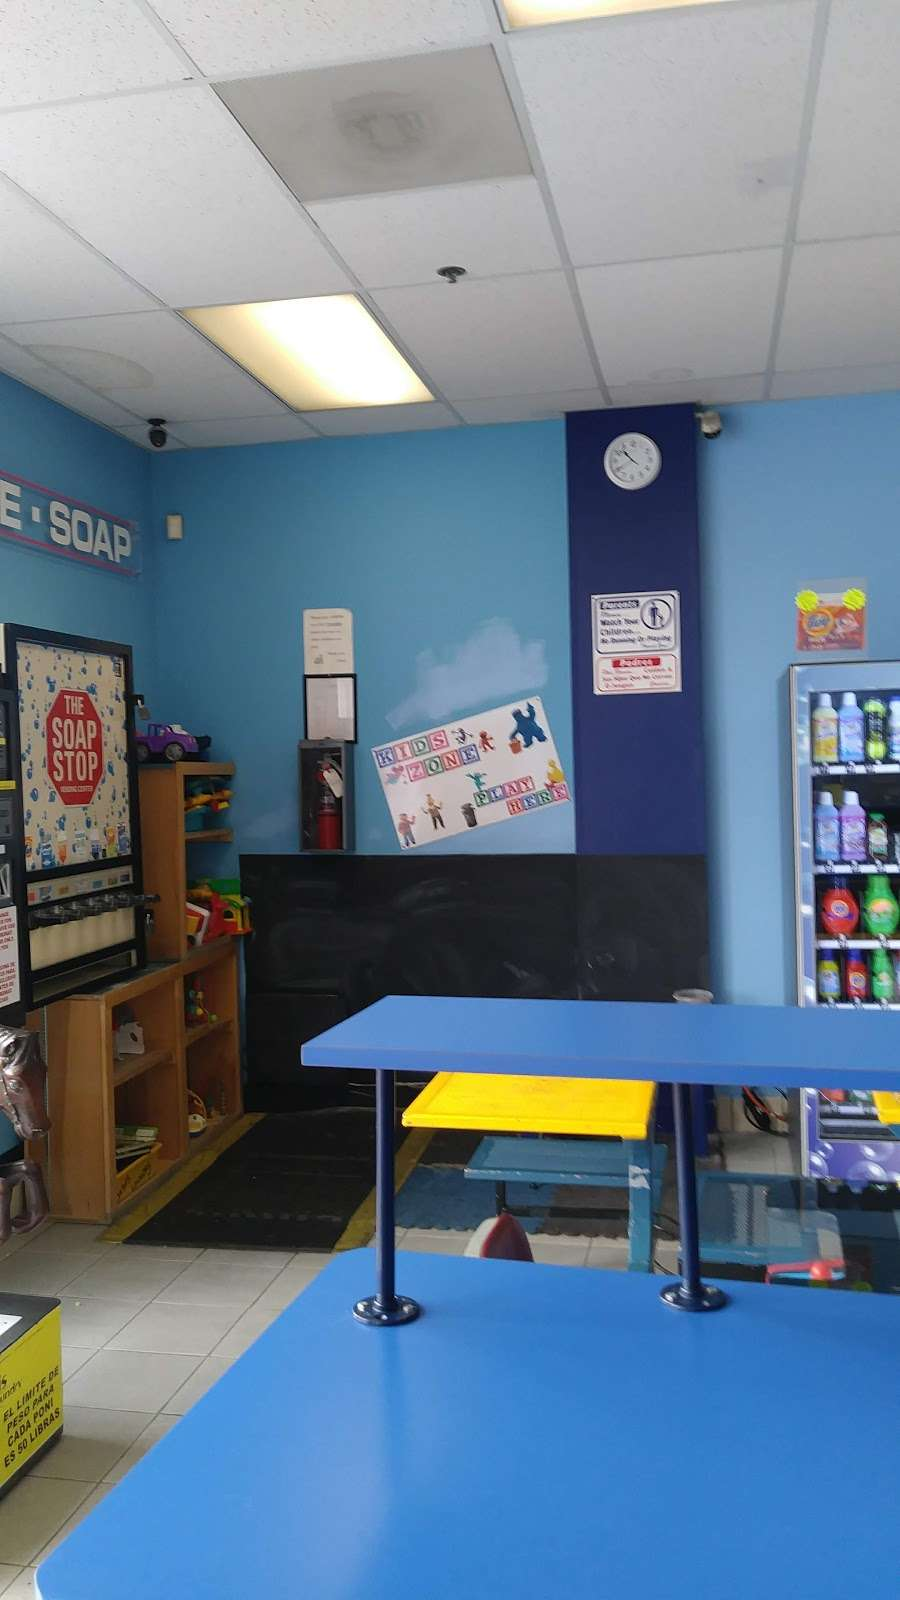 Oasis Laundry - laundry  | Photo 5 of 7 | Address: 7295 Snyder Ln, Rohnert Park, CA 94928, USA | Phone: (707) 794-8933